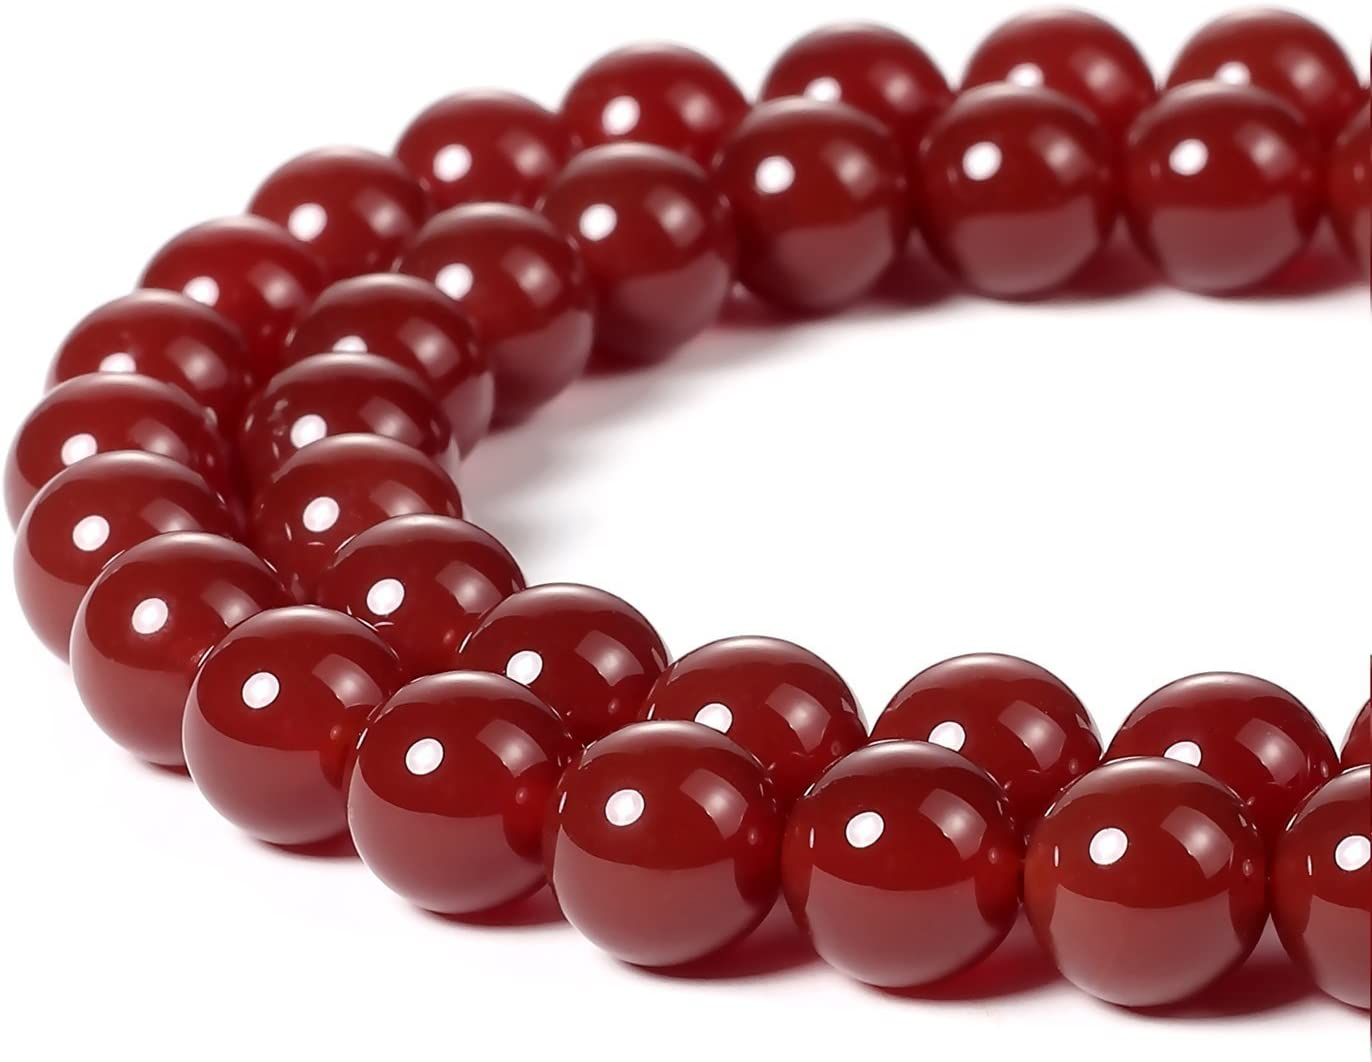 ON SALE Natural Carnelian Rondelle Faceted 3-4mm Gemstone Beads Strand 13 inches long Top Quality Wholesale Prices Jewelry making gemstone b